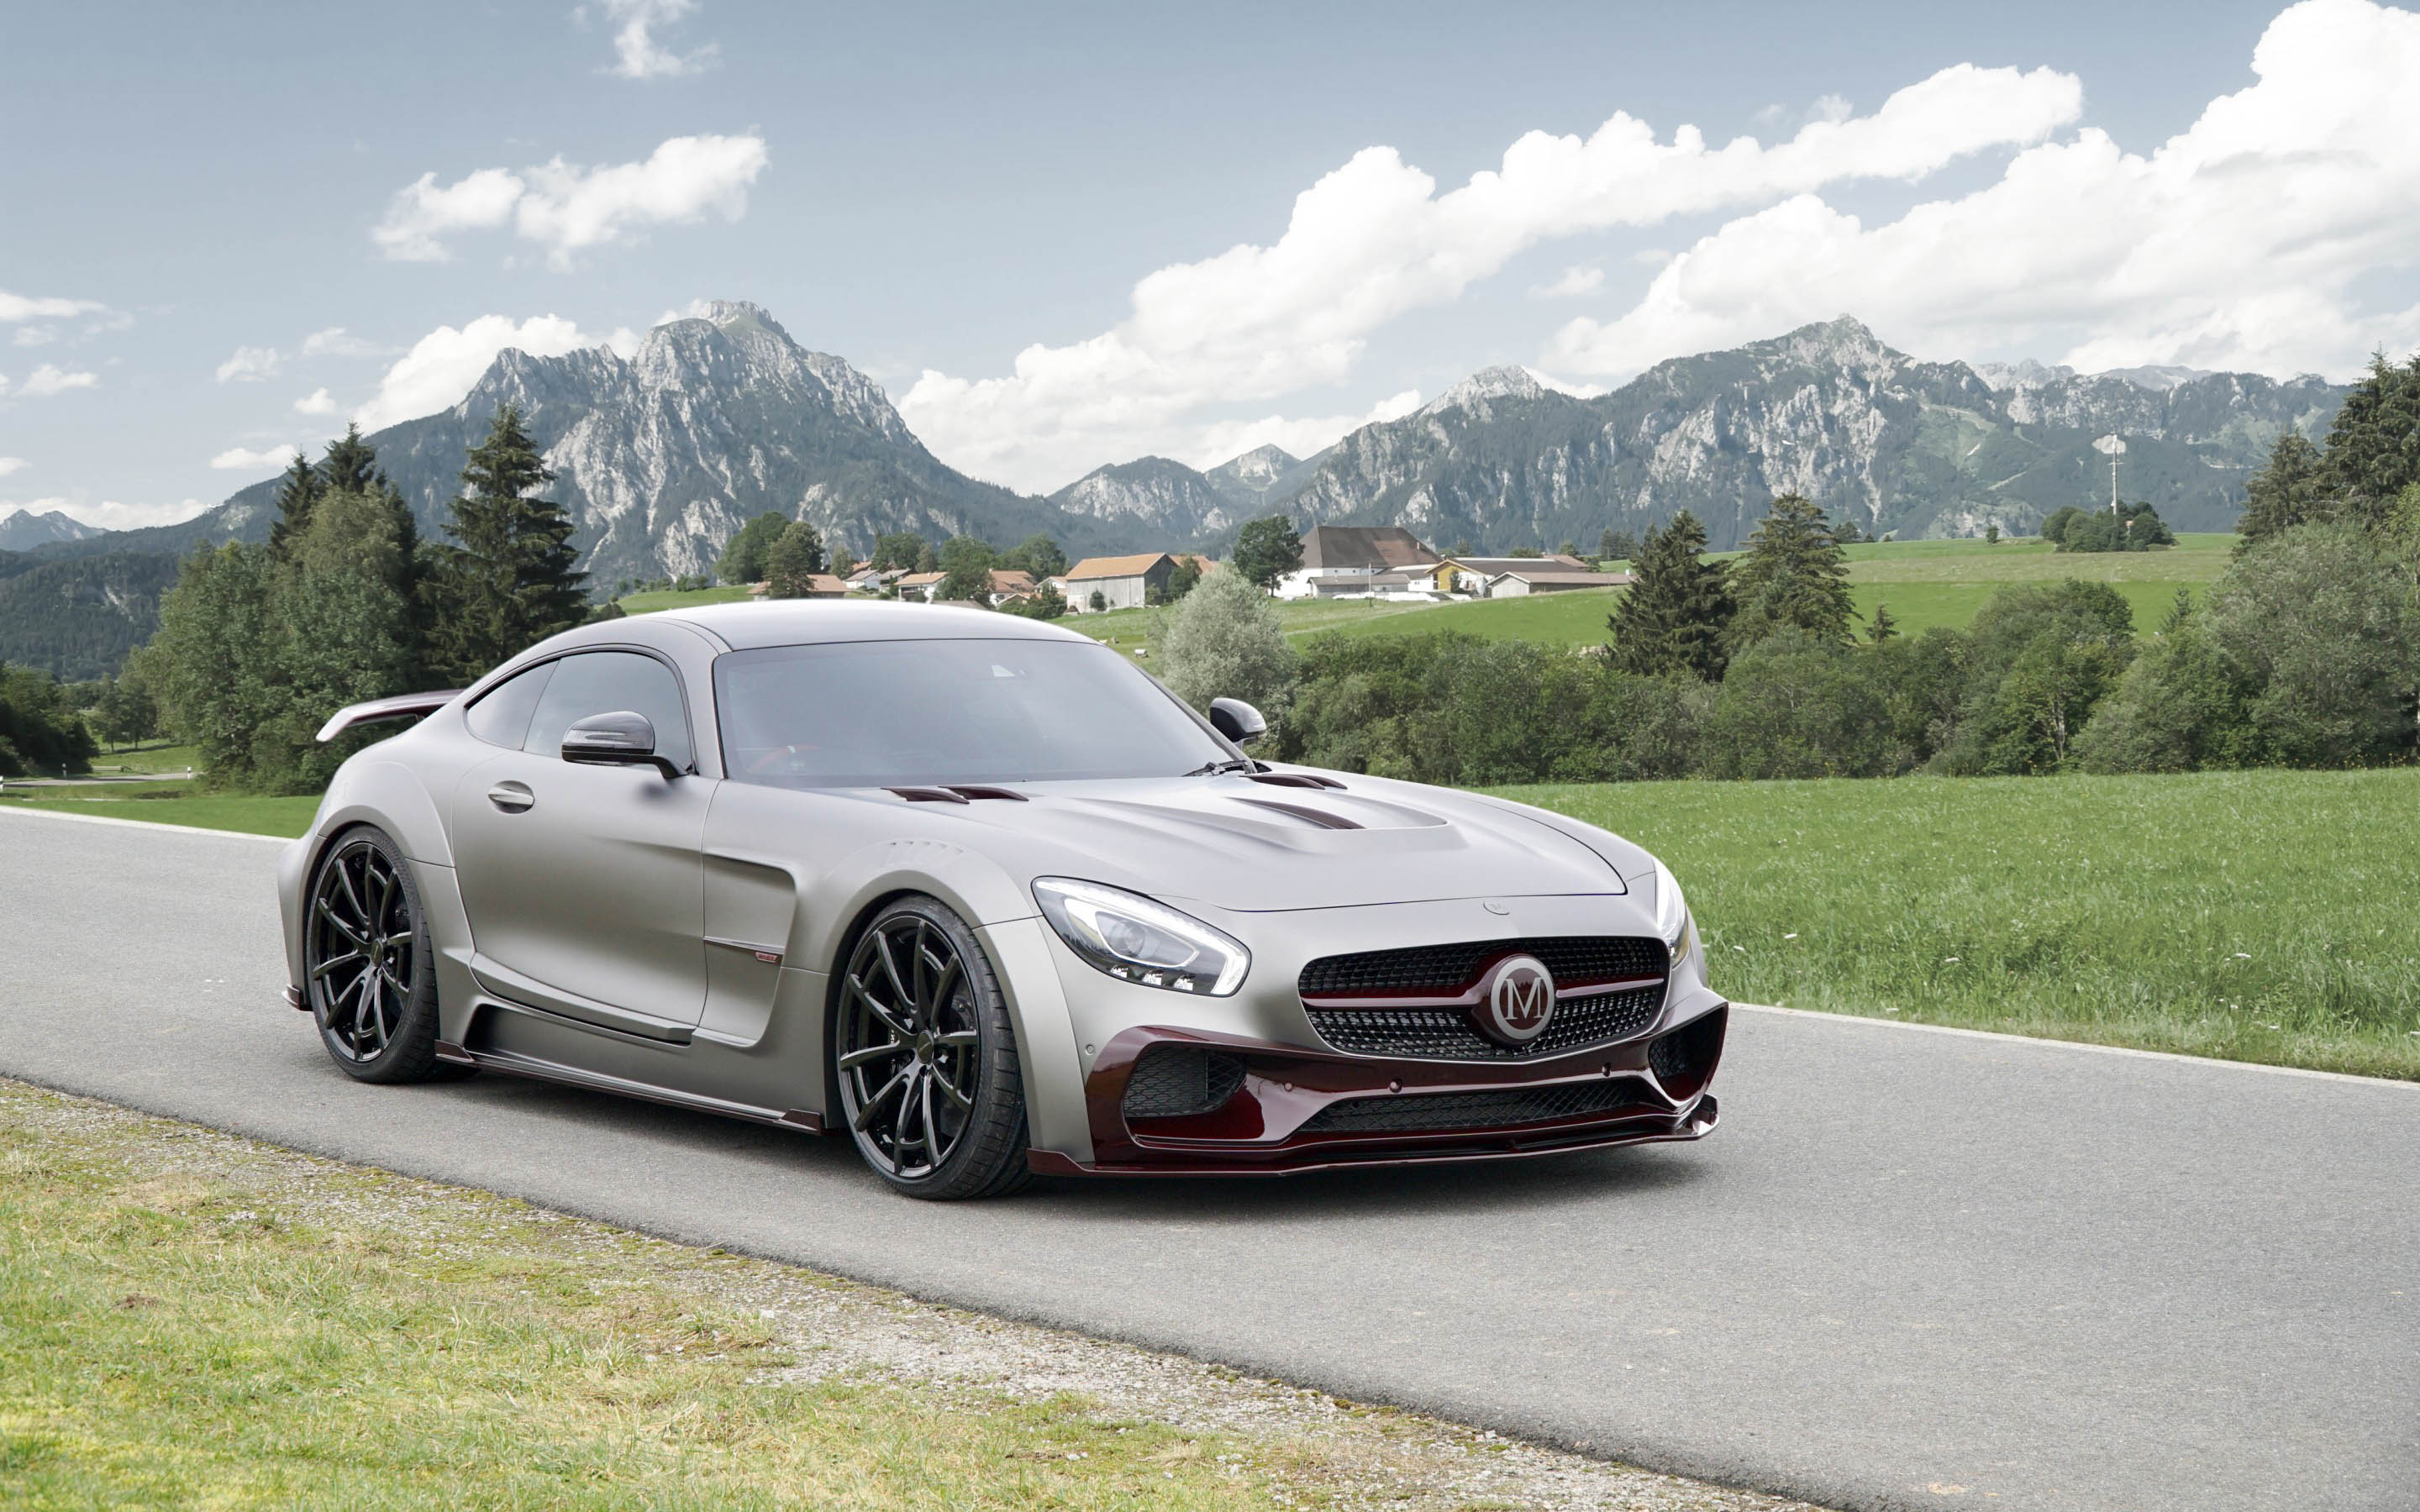 Mercedes-AMG GT Some Awesome HD Wallpapers - All HD Wallpapers